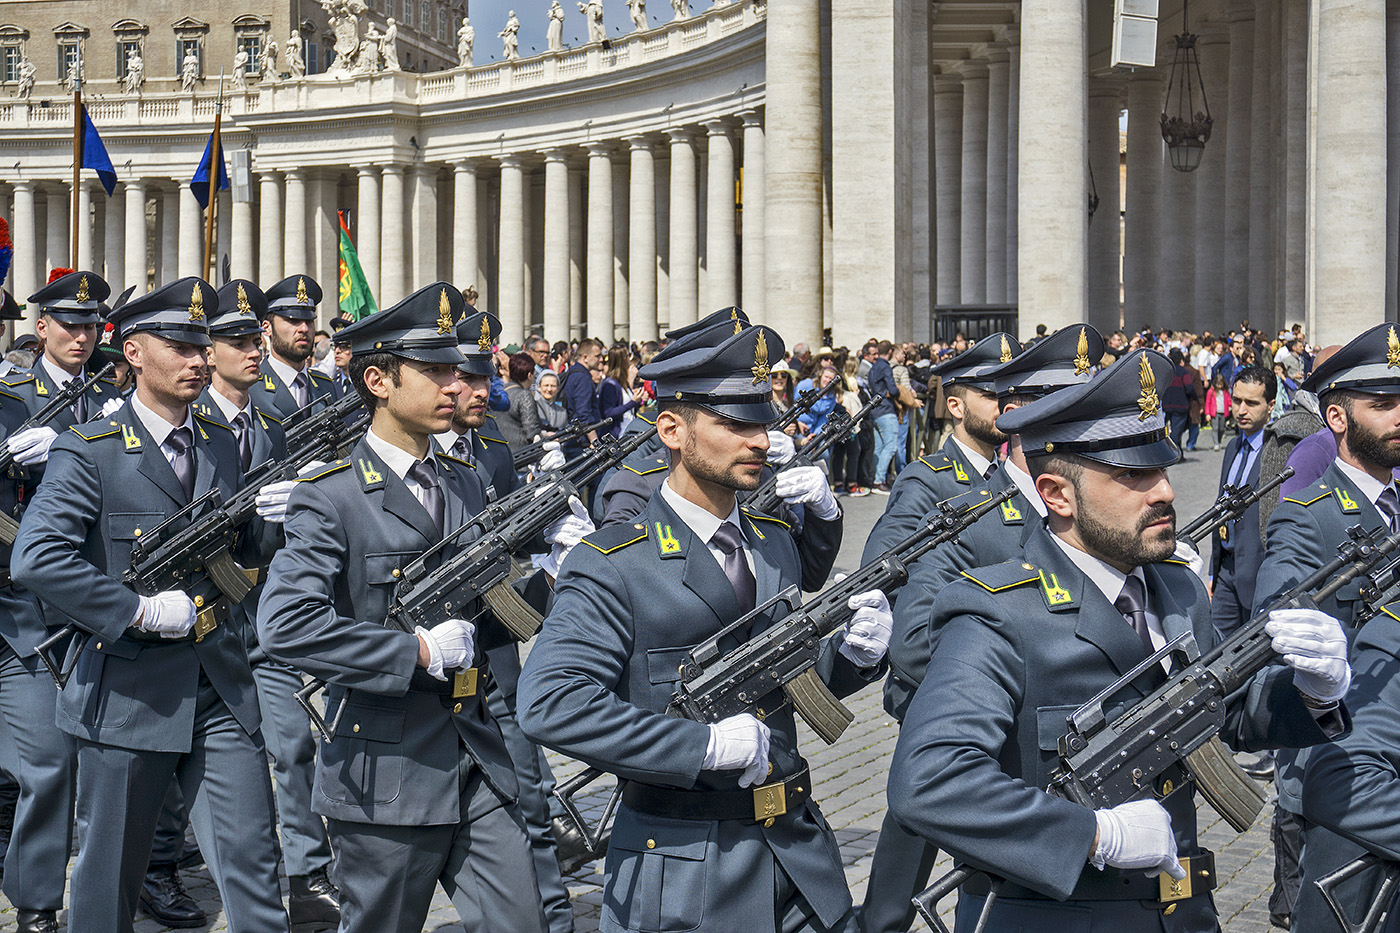 Easter Parade at The Vatican